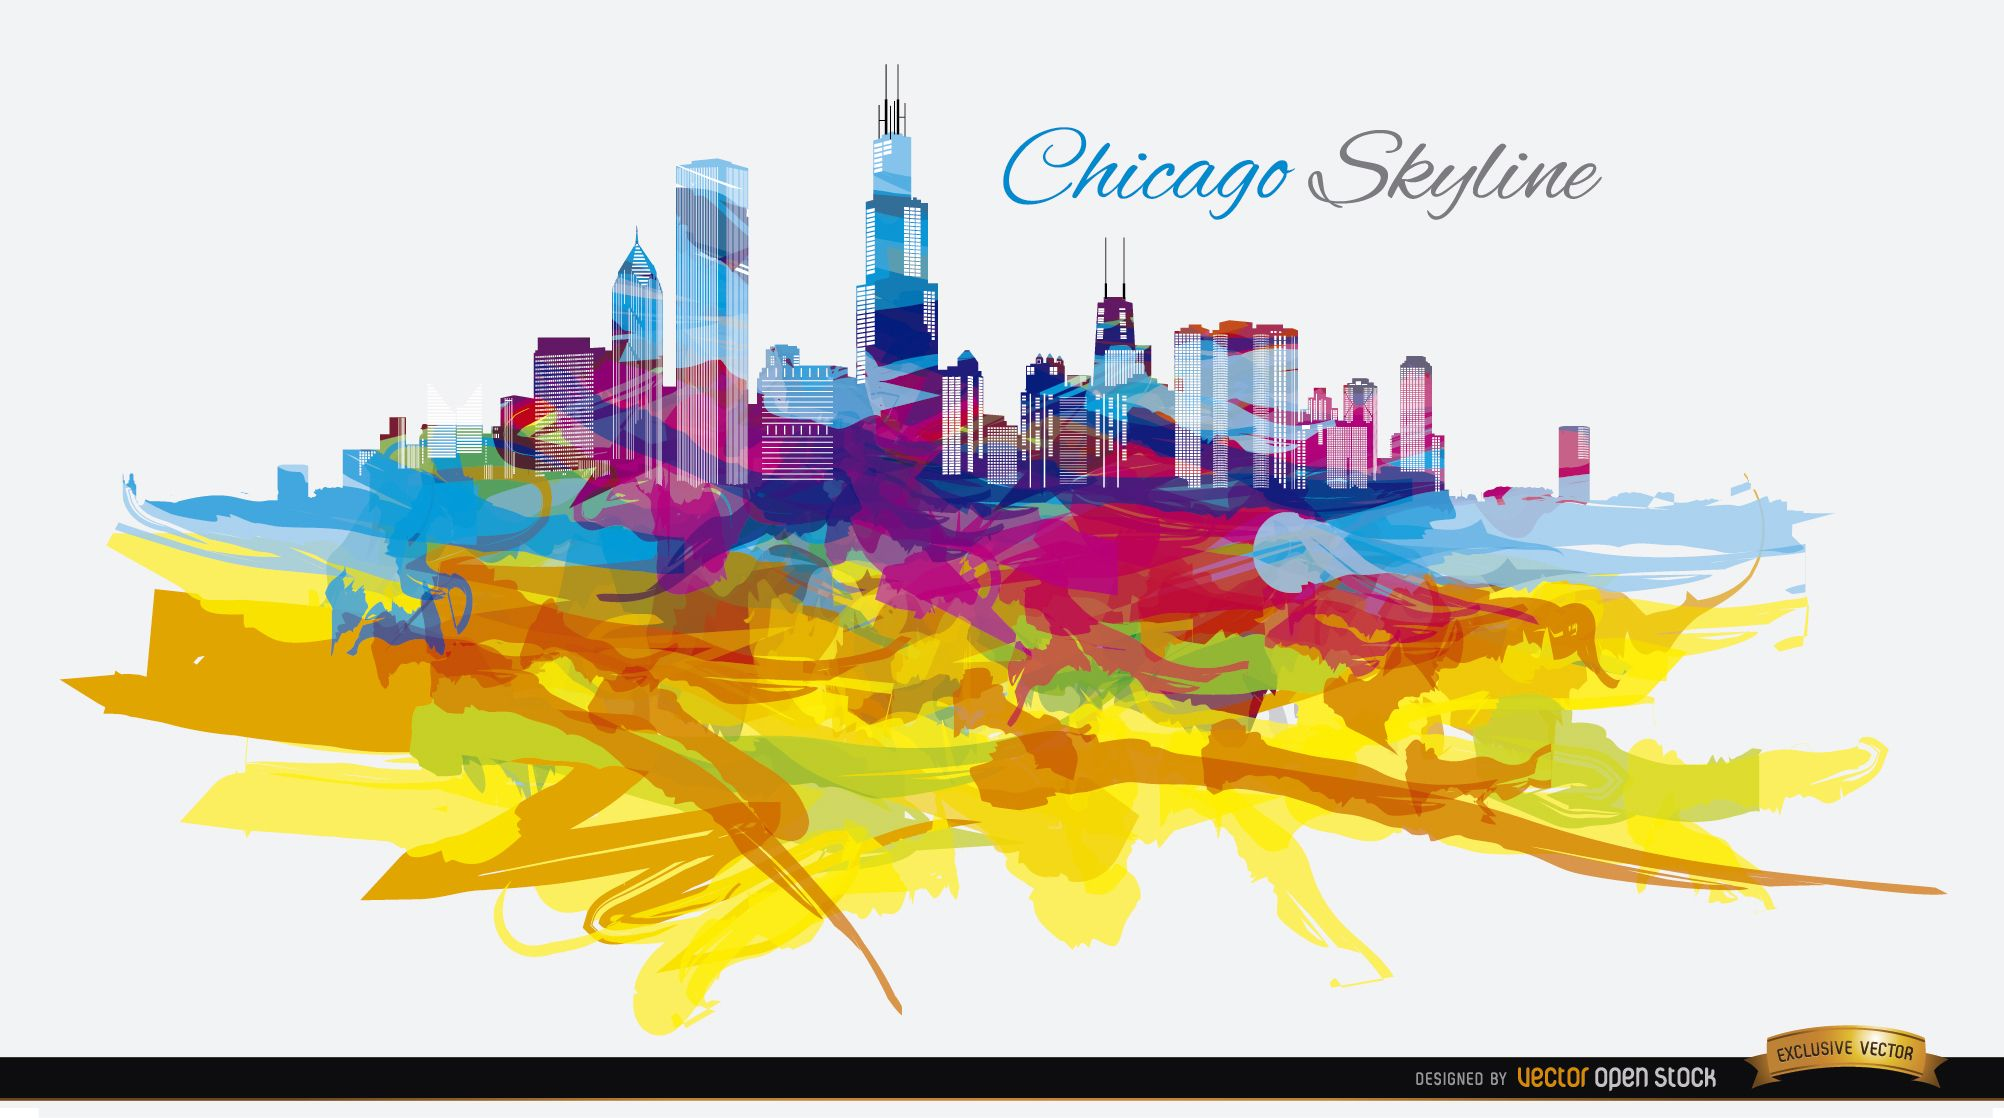 Psychedelyc Colorful Chicago Skyline Download Large Image 2004x1118px